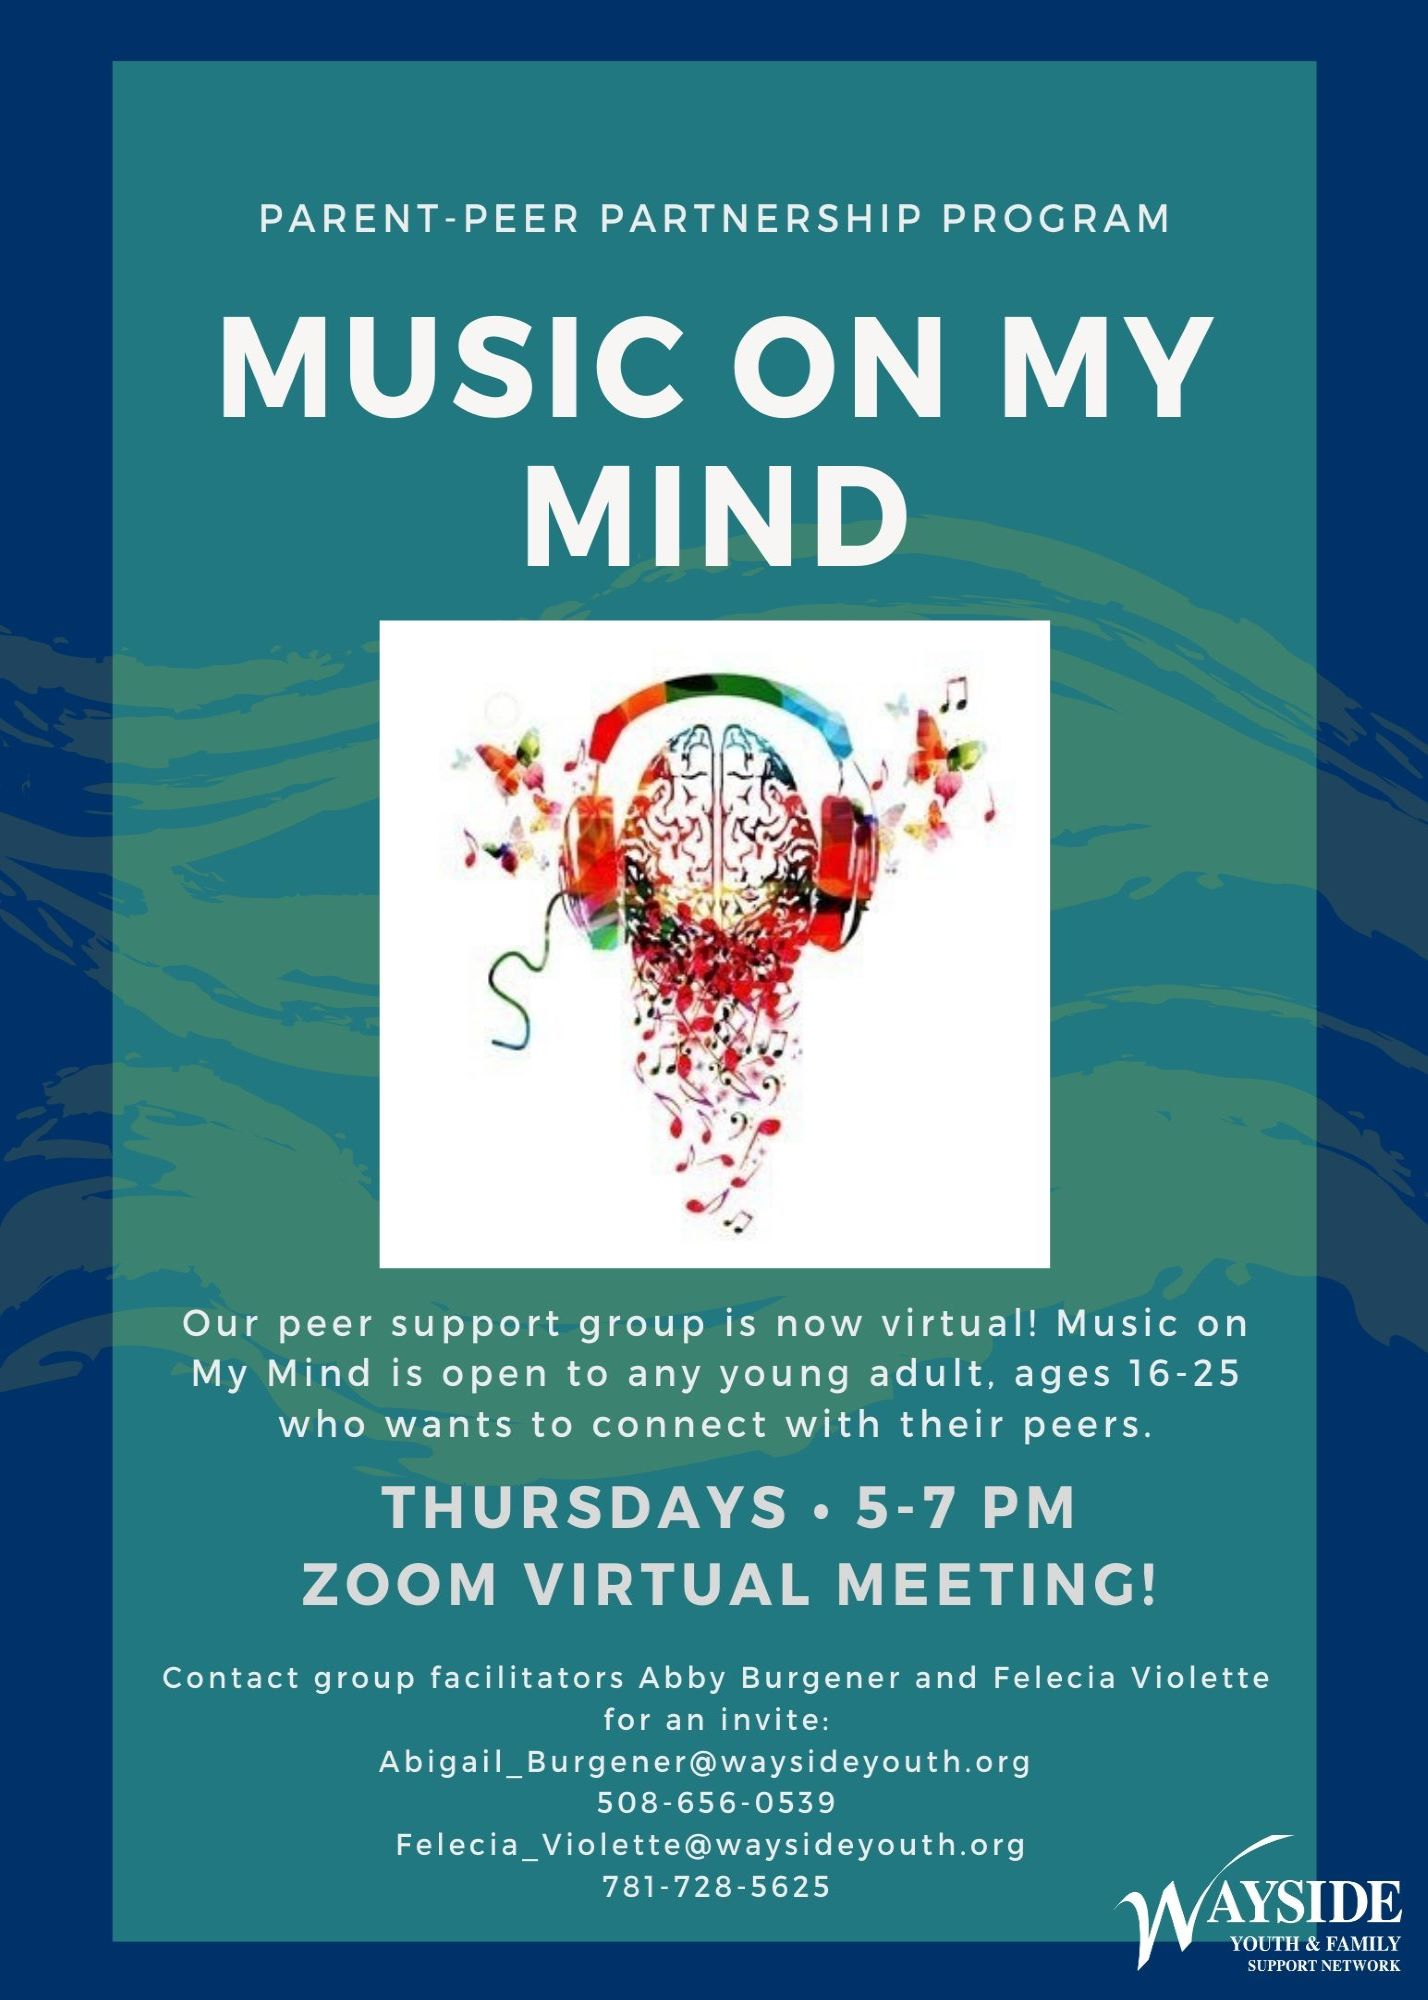 Music on My Mind: Wayside Youth & Family Support Network (Virtual Young Adult Support Group 16-25) Charlton